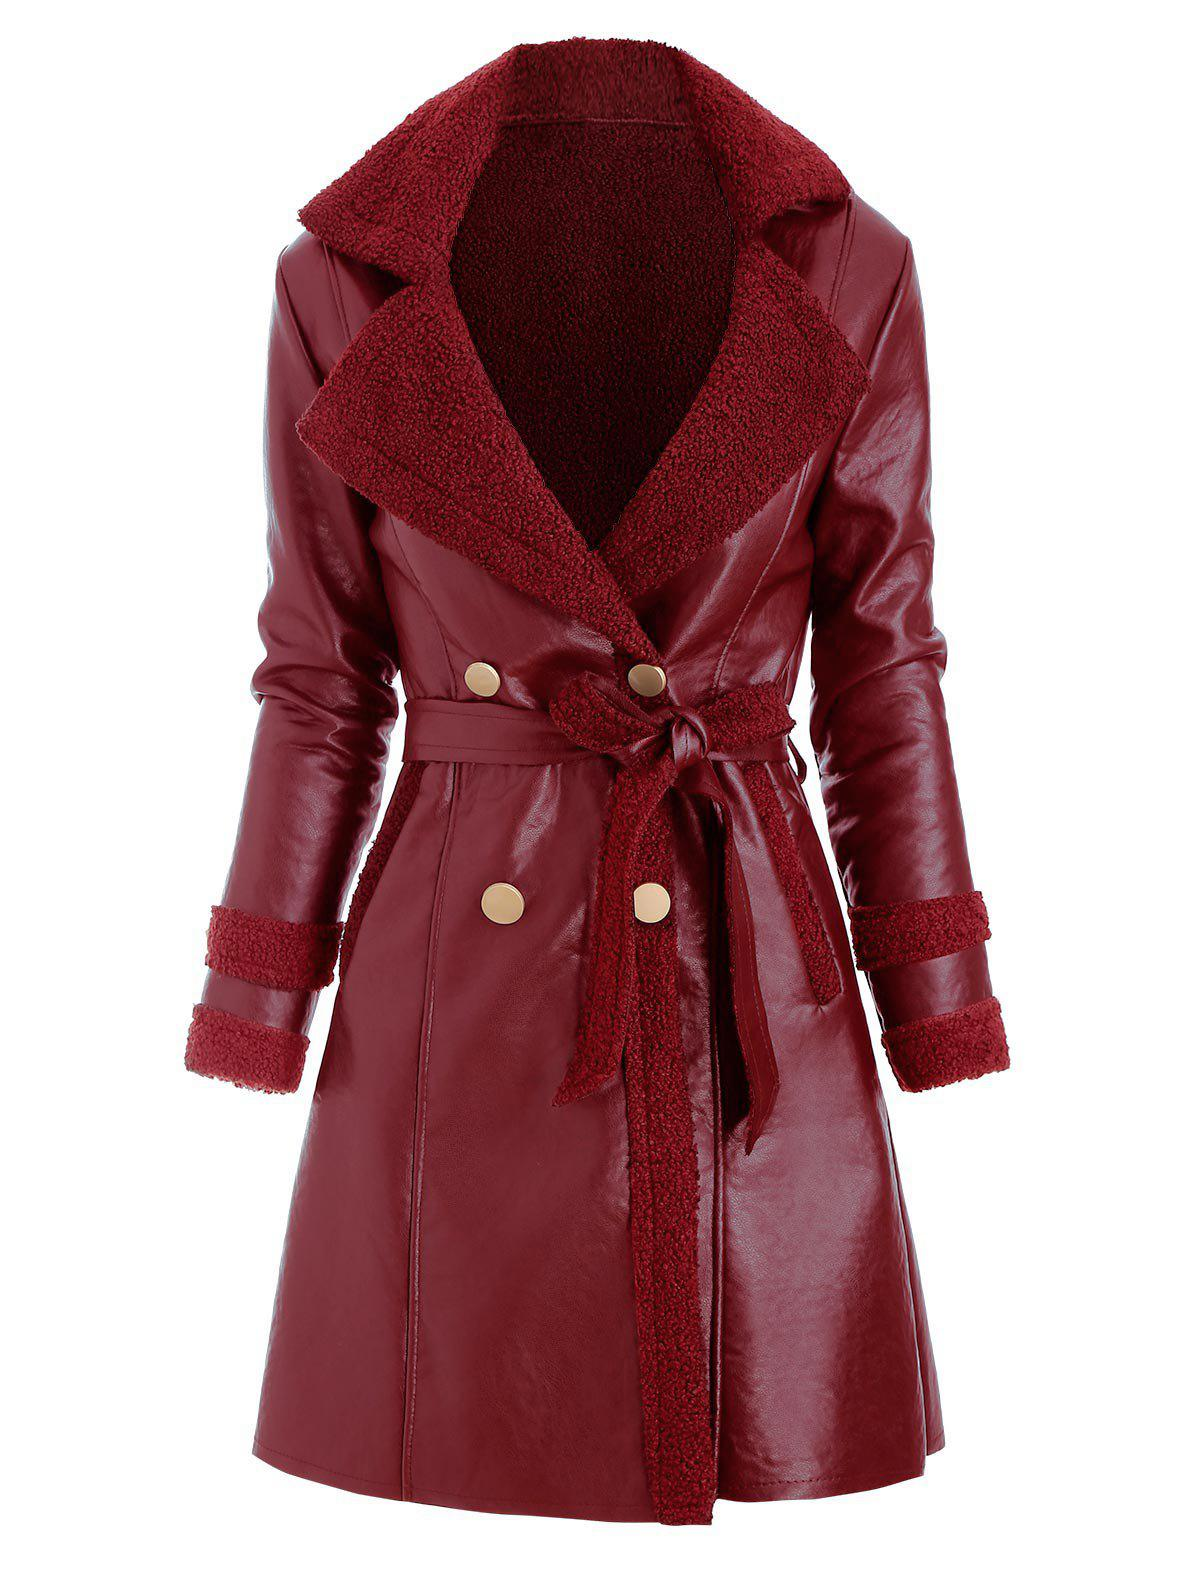 Discount Faux Leather Shearling Insert Pocket Belted Coat